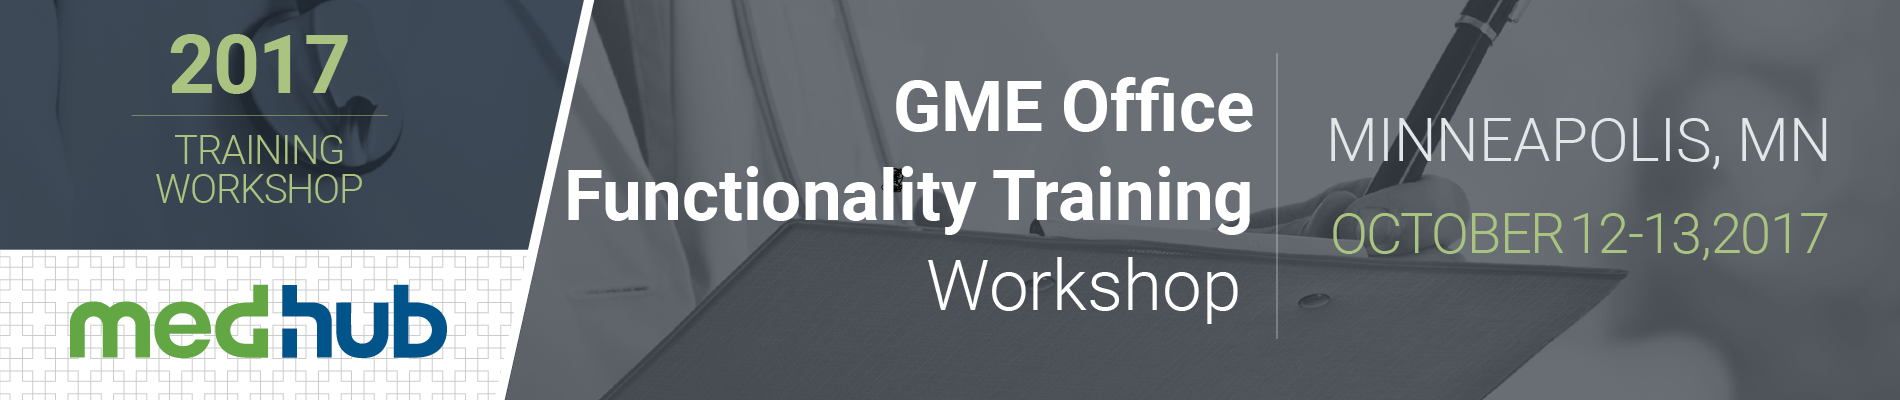 MedHub GME Office Functionality Training Workshop (Oct 12-13)